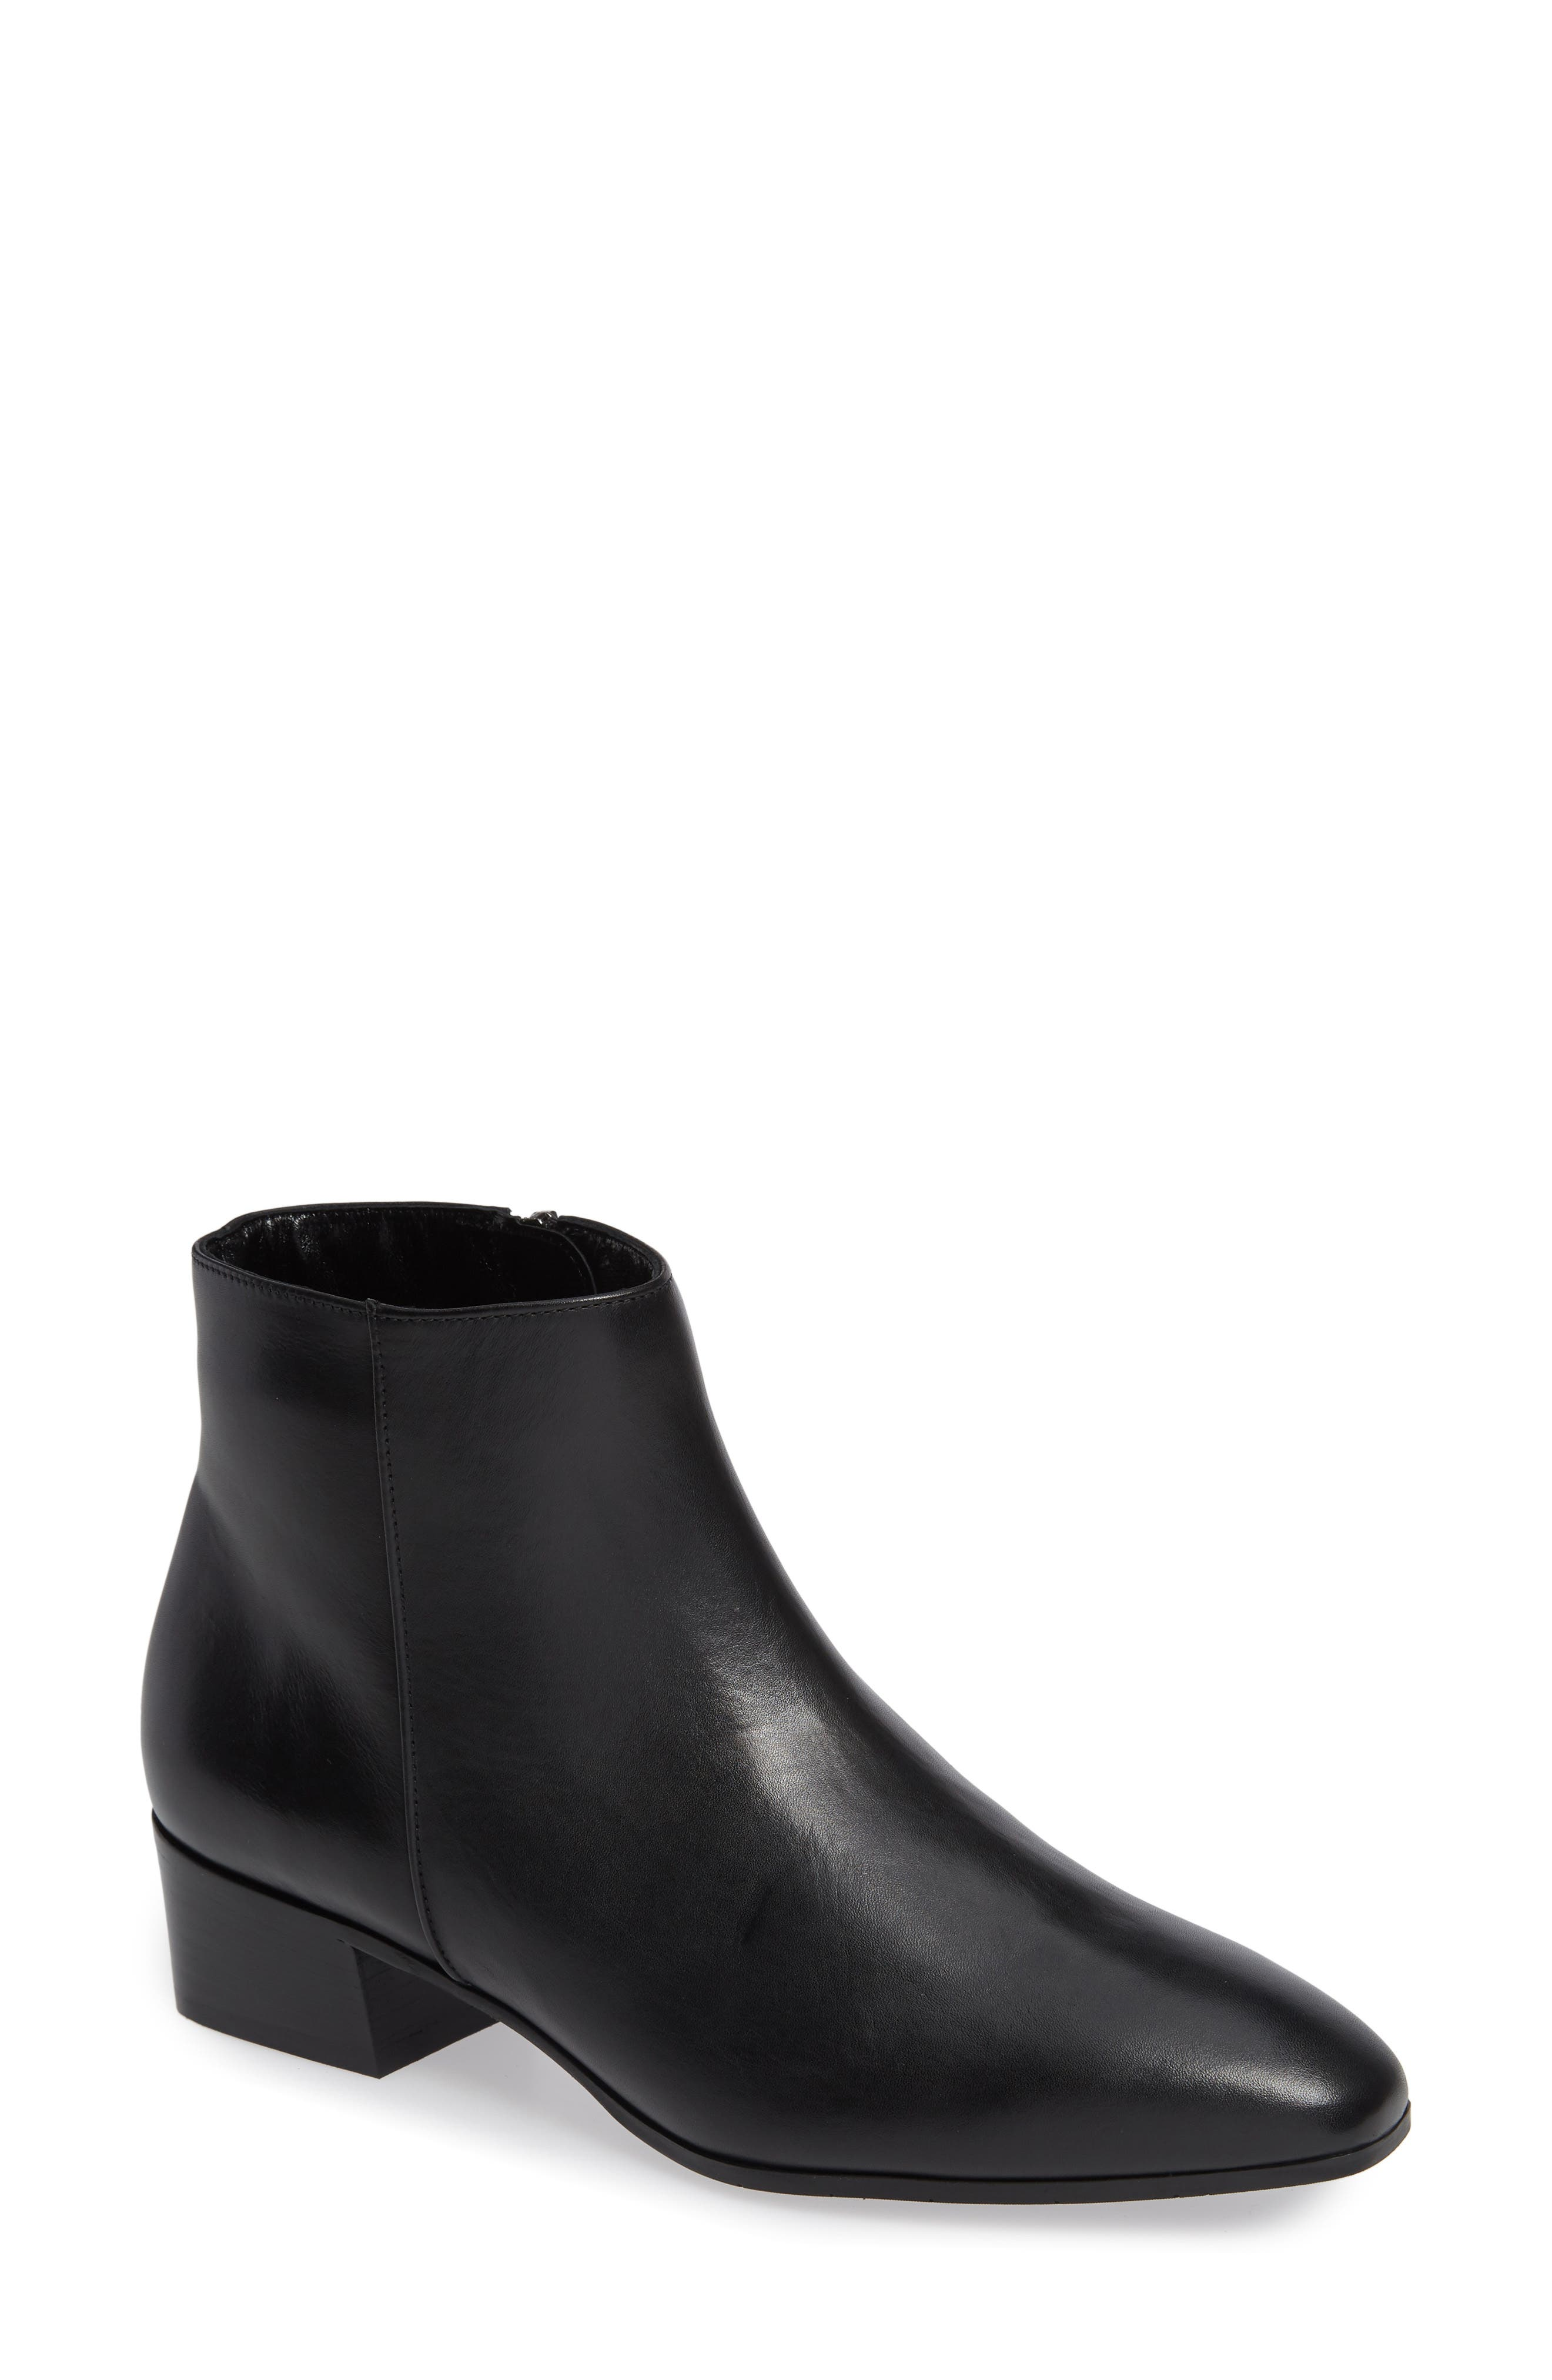 Fuoco Weatherproof Bootie,                             Main thumbnail 1, color,                             BLACK LEATHER